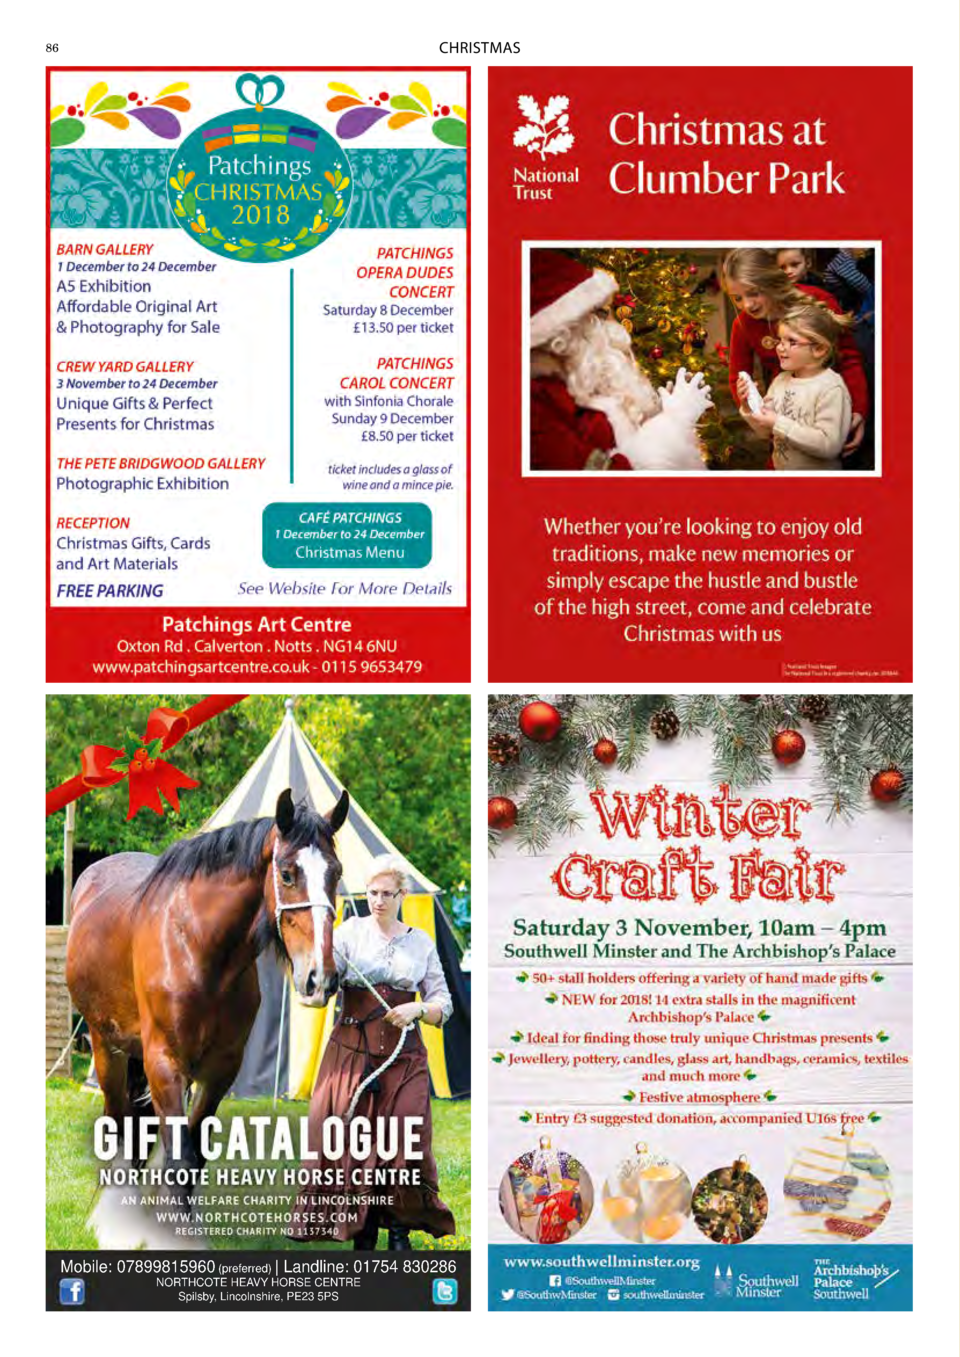 CHRISTMAS  86  Mobile  07899815960  preferred    Landline  01754 830286 NORTHCOTE HEAVY HORSE CENTRE Spilsby, Lincolnshire...